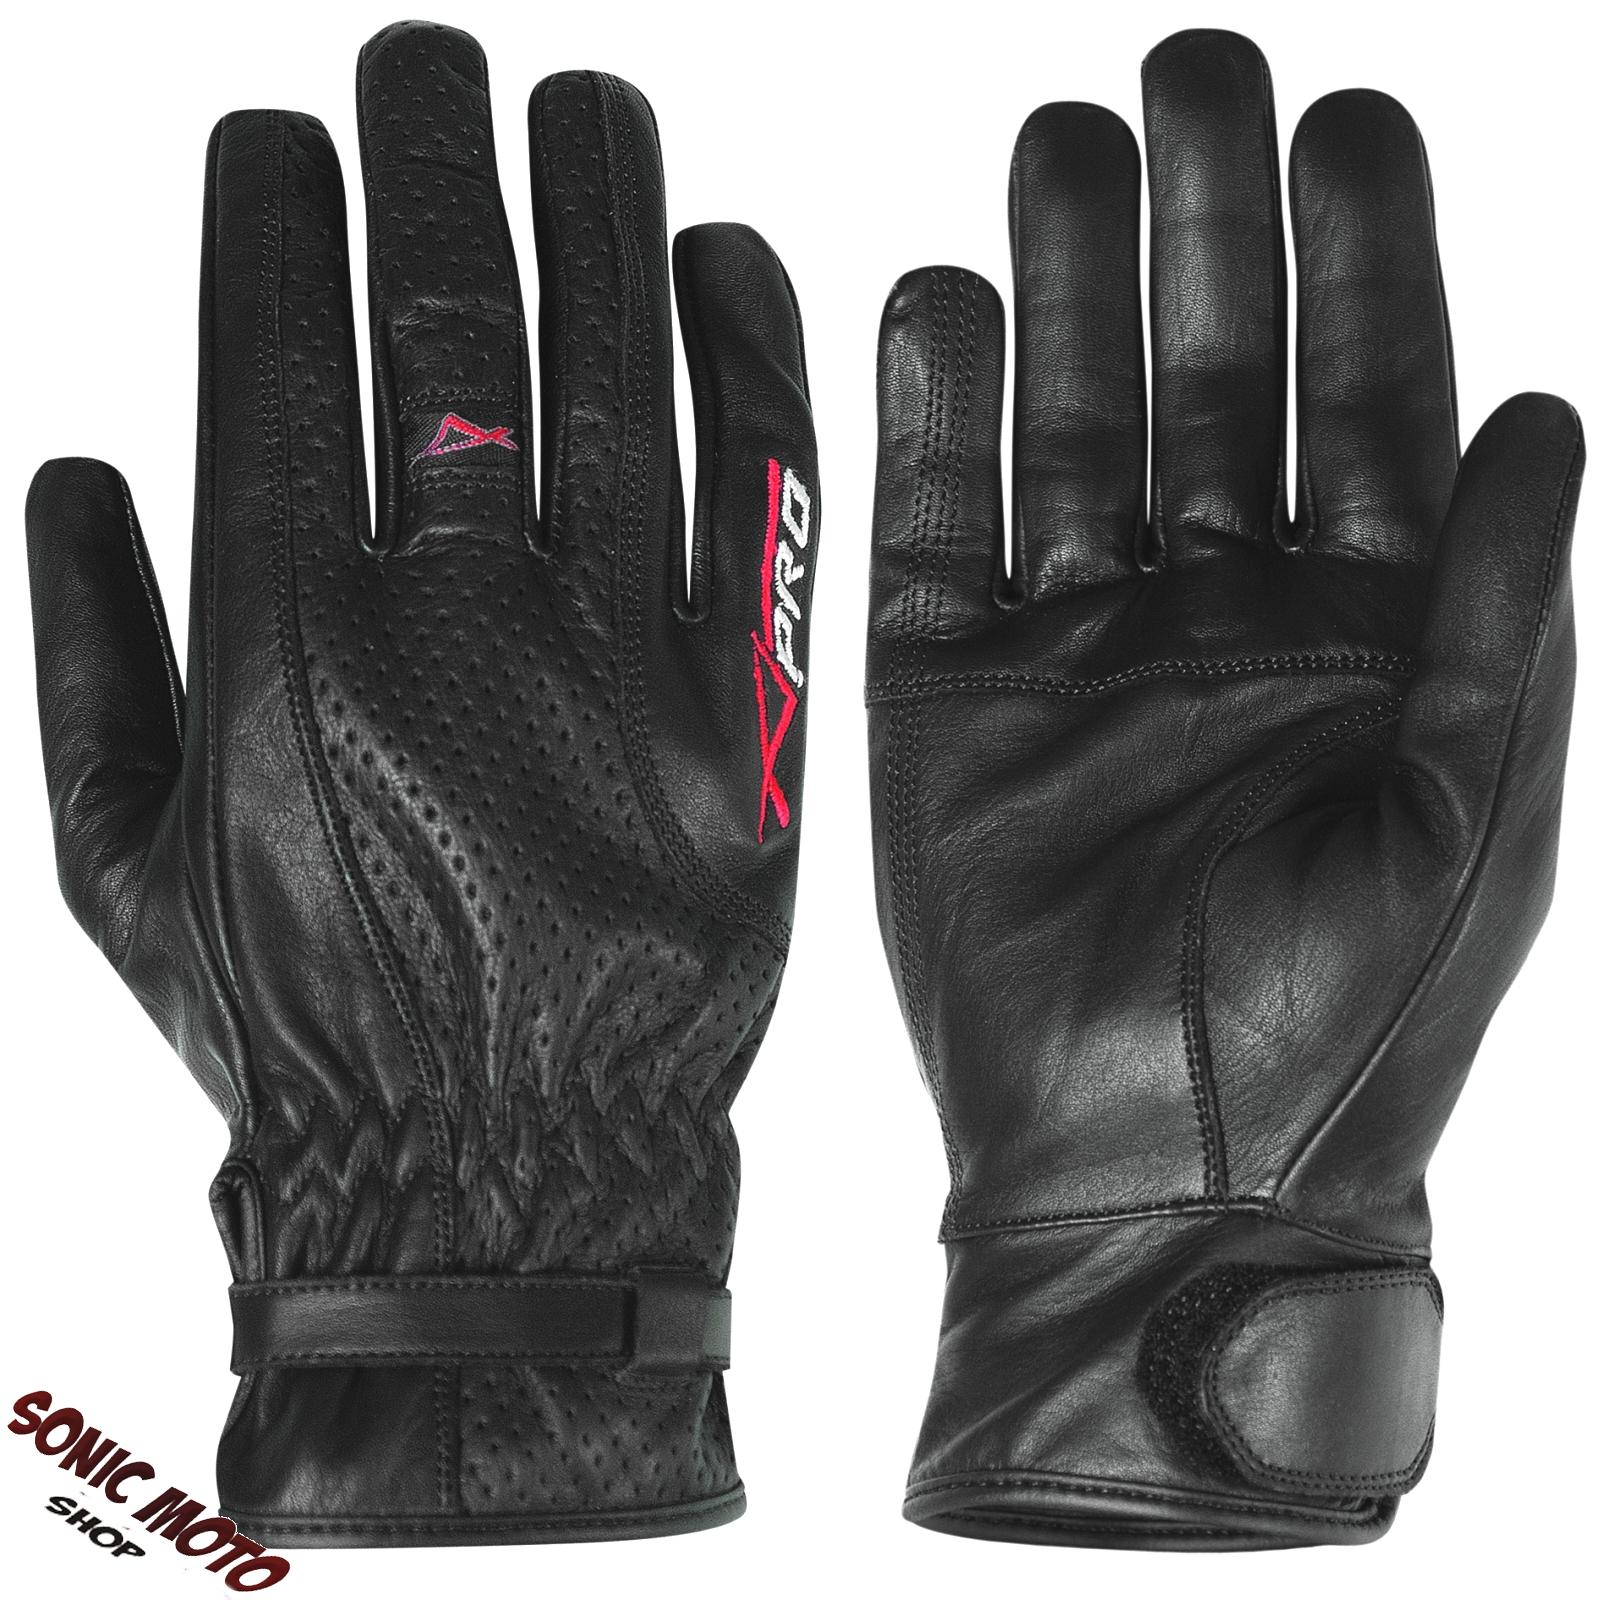 gants cuir vachette sonic moto taille unique femme homme moto motard scooter ebay. Black Bedroom Furniture Sets. Home Design Ideas